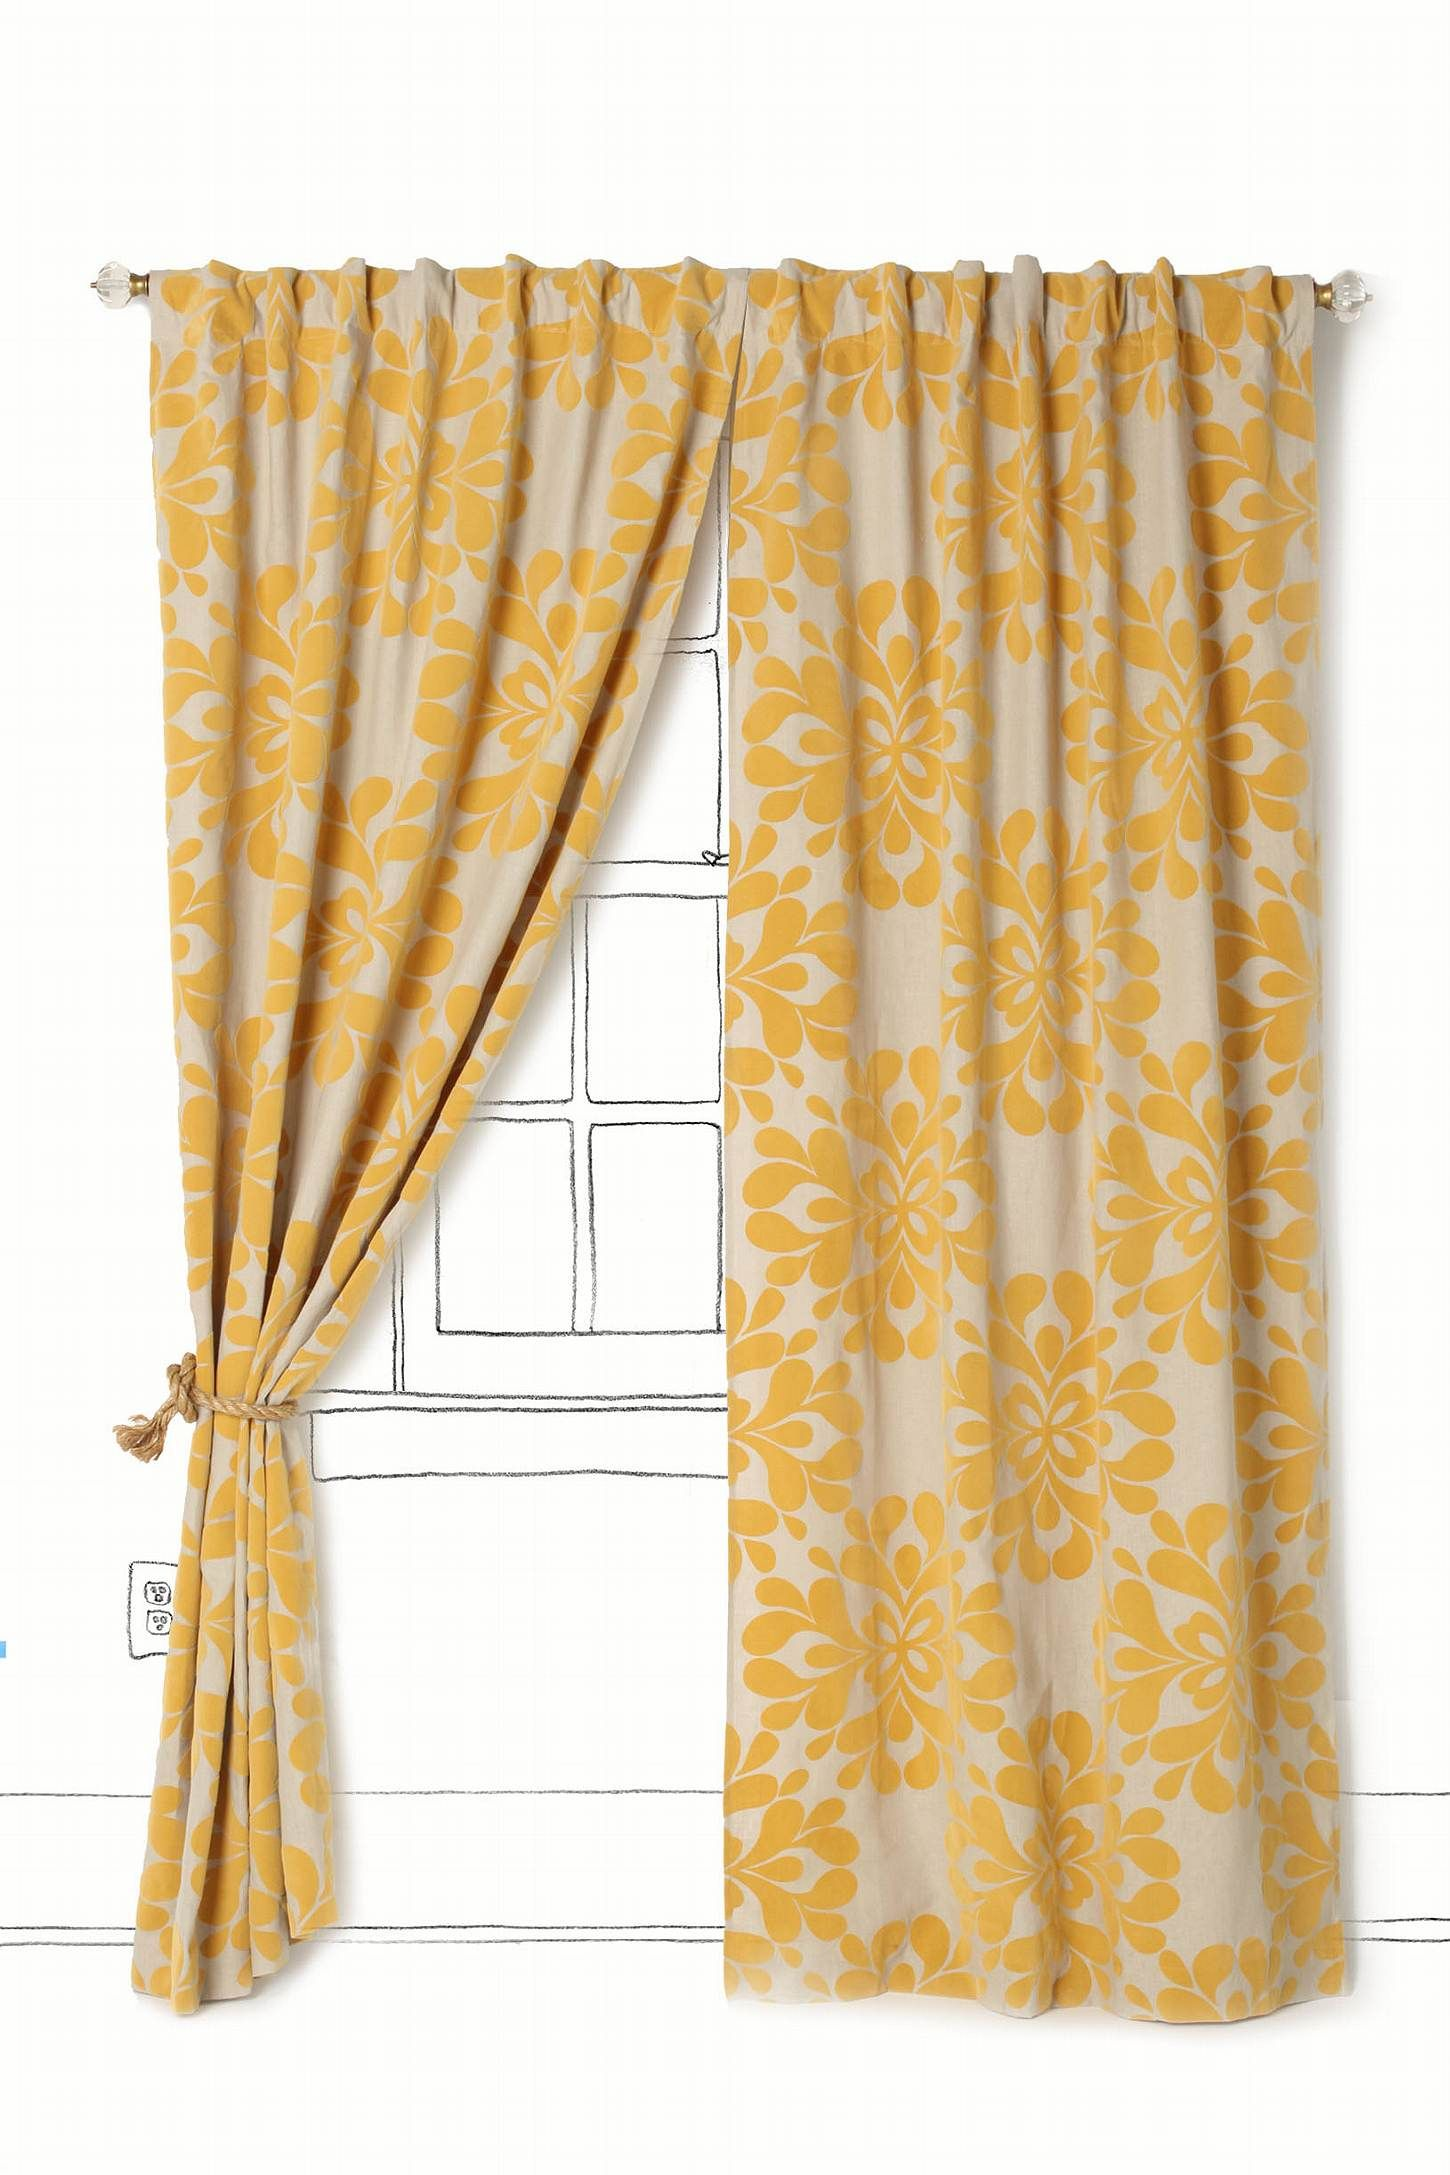 Cheap Curtains Yellow - Carved wood jewelry box